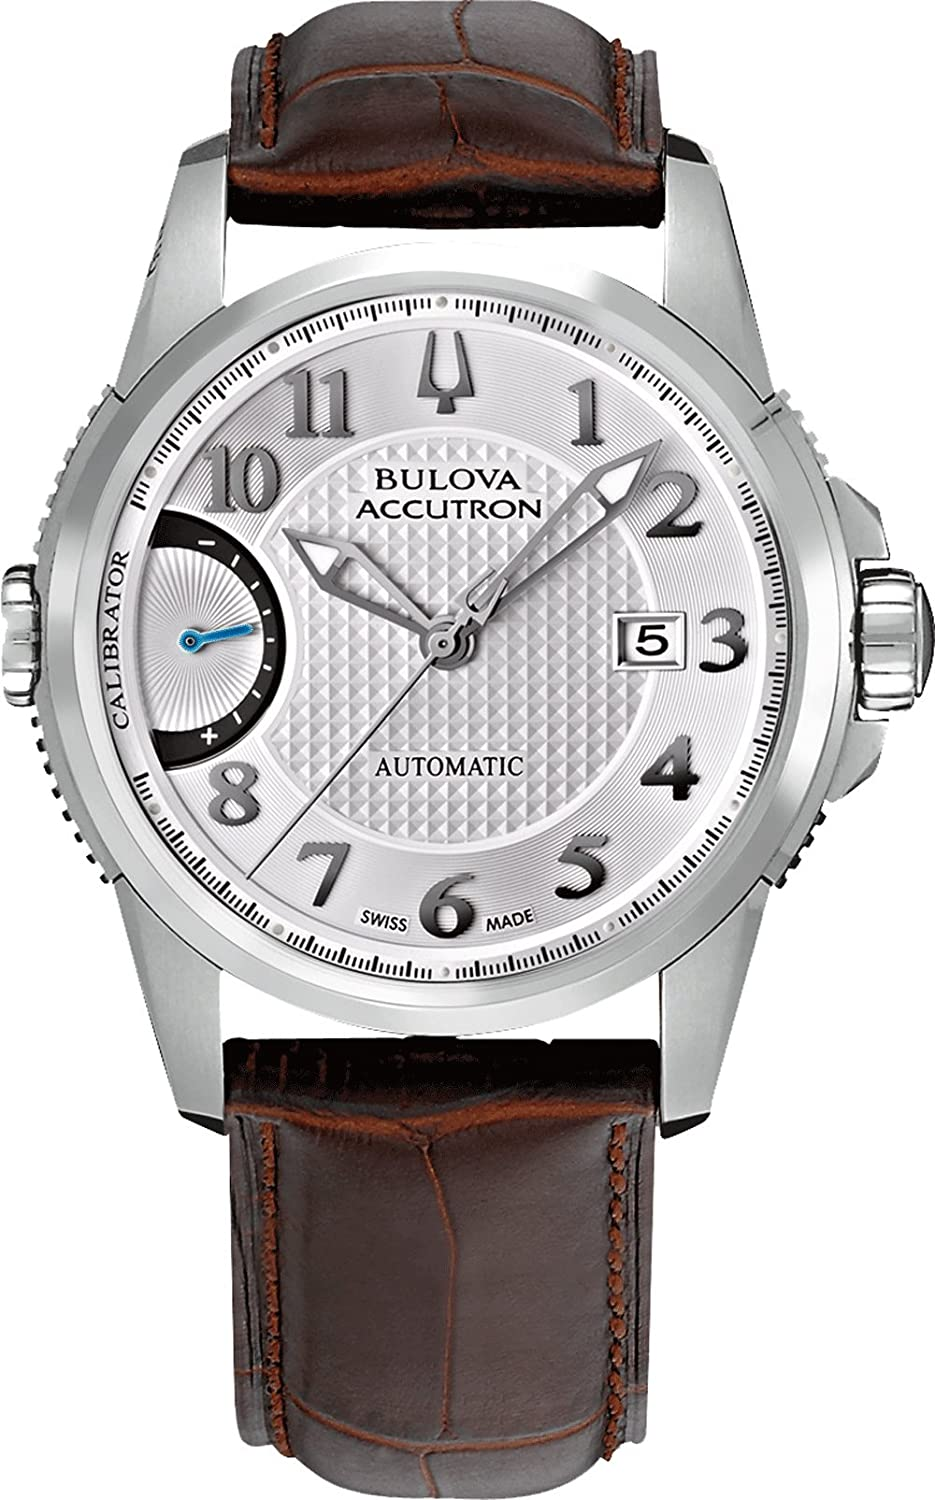 Bulova Accutron Men's Limited Edition EFAS Calibrator Watch - 63B160